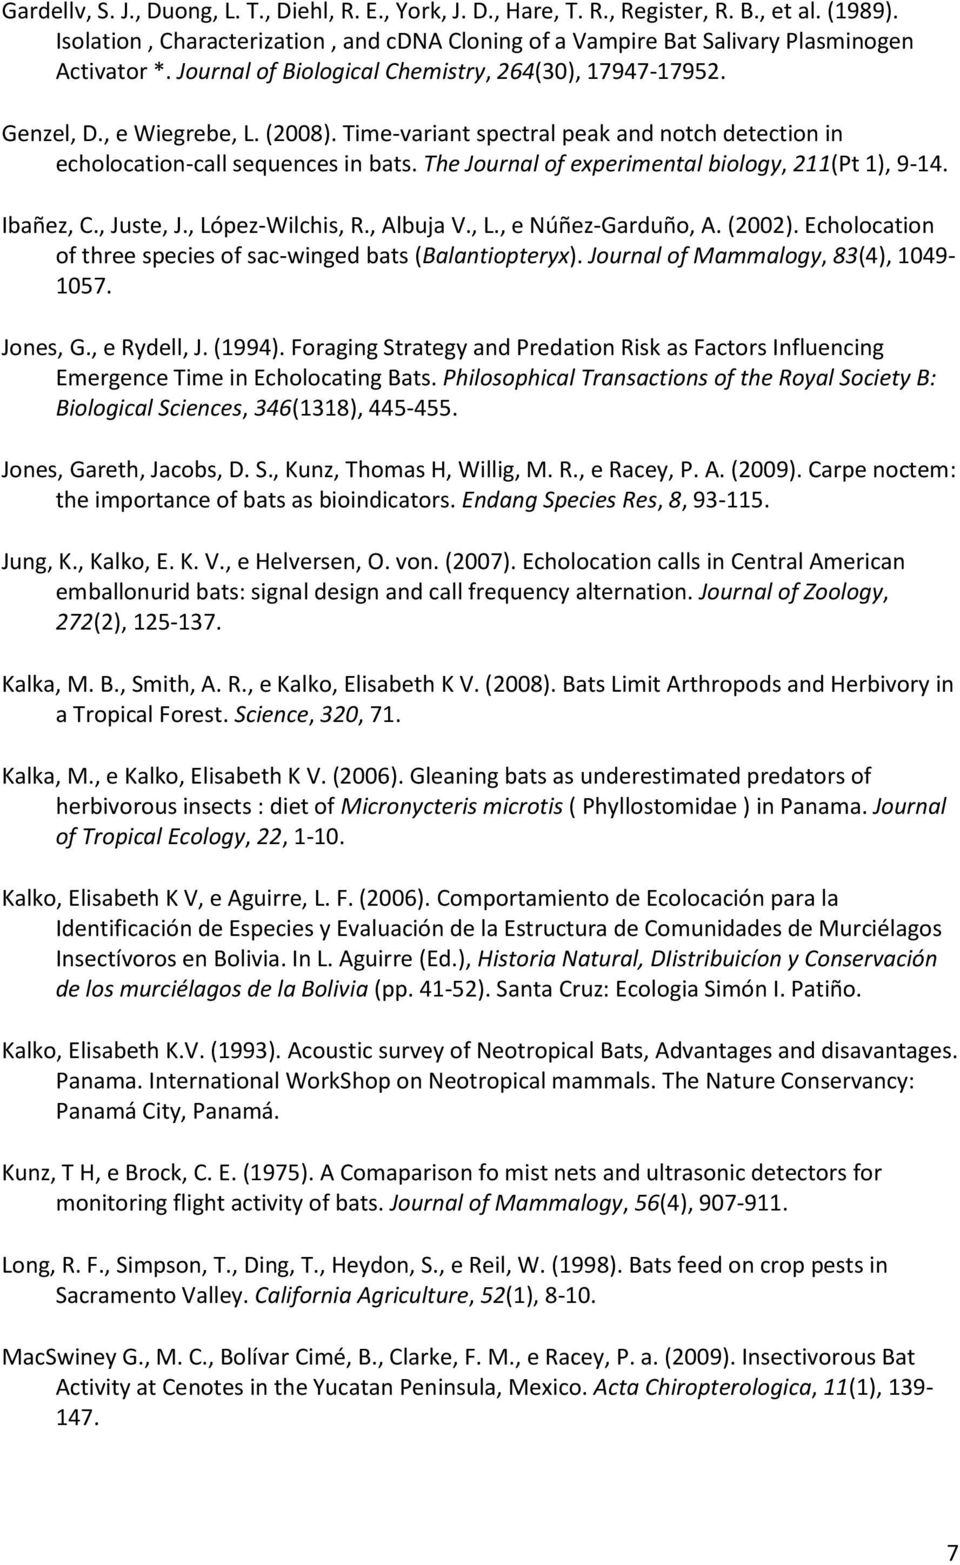 The Journal of experimental biology, 211(Pt 1), 9-14. Ibañez, C., Juste, J., López-Wilchis, R., Albuja V., L., e Núñez-Garduño, A. (2002).